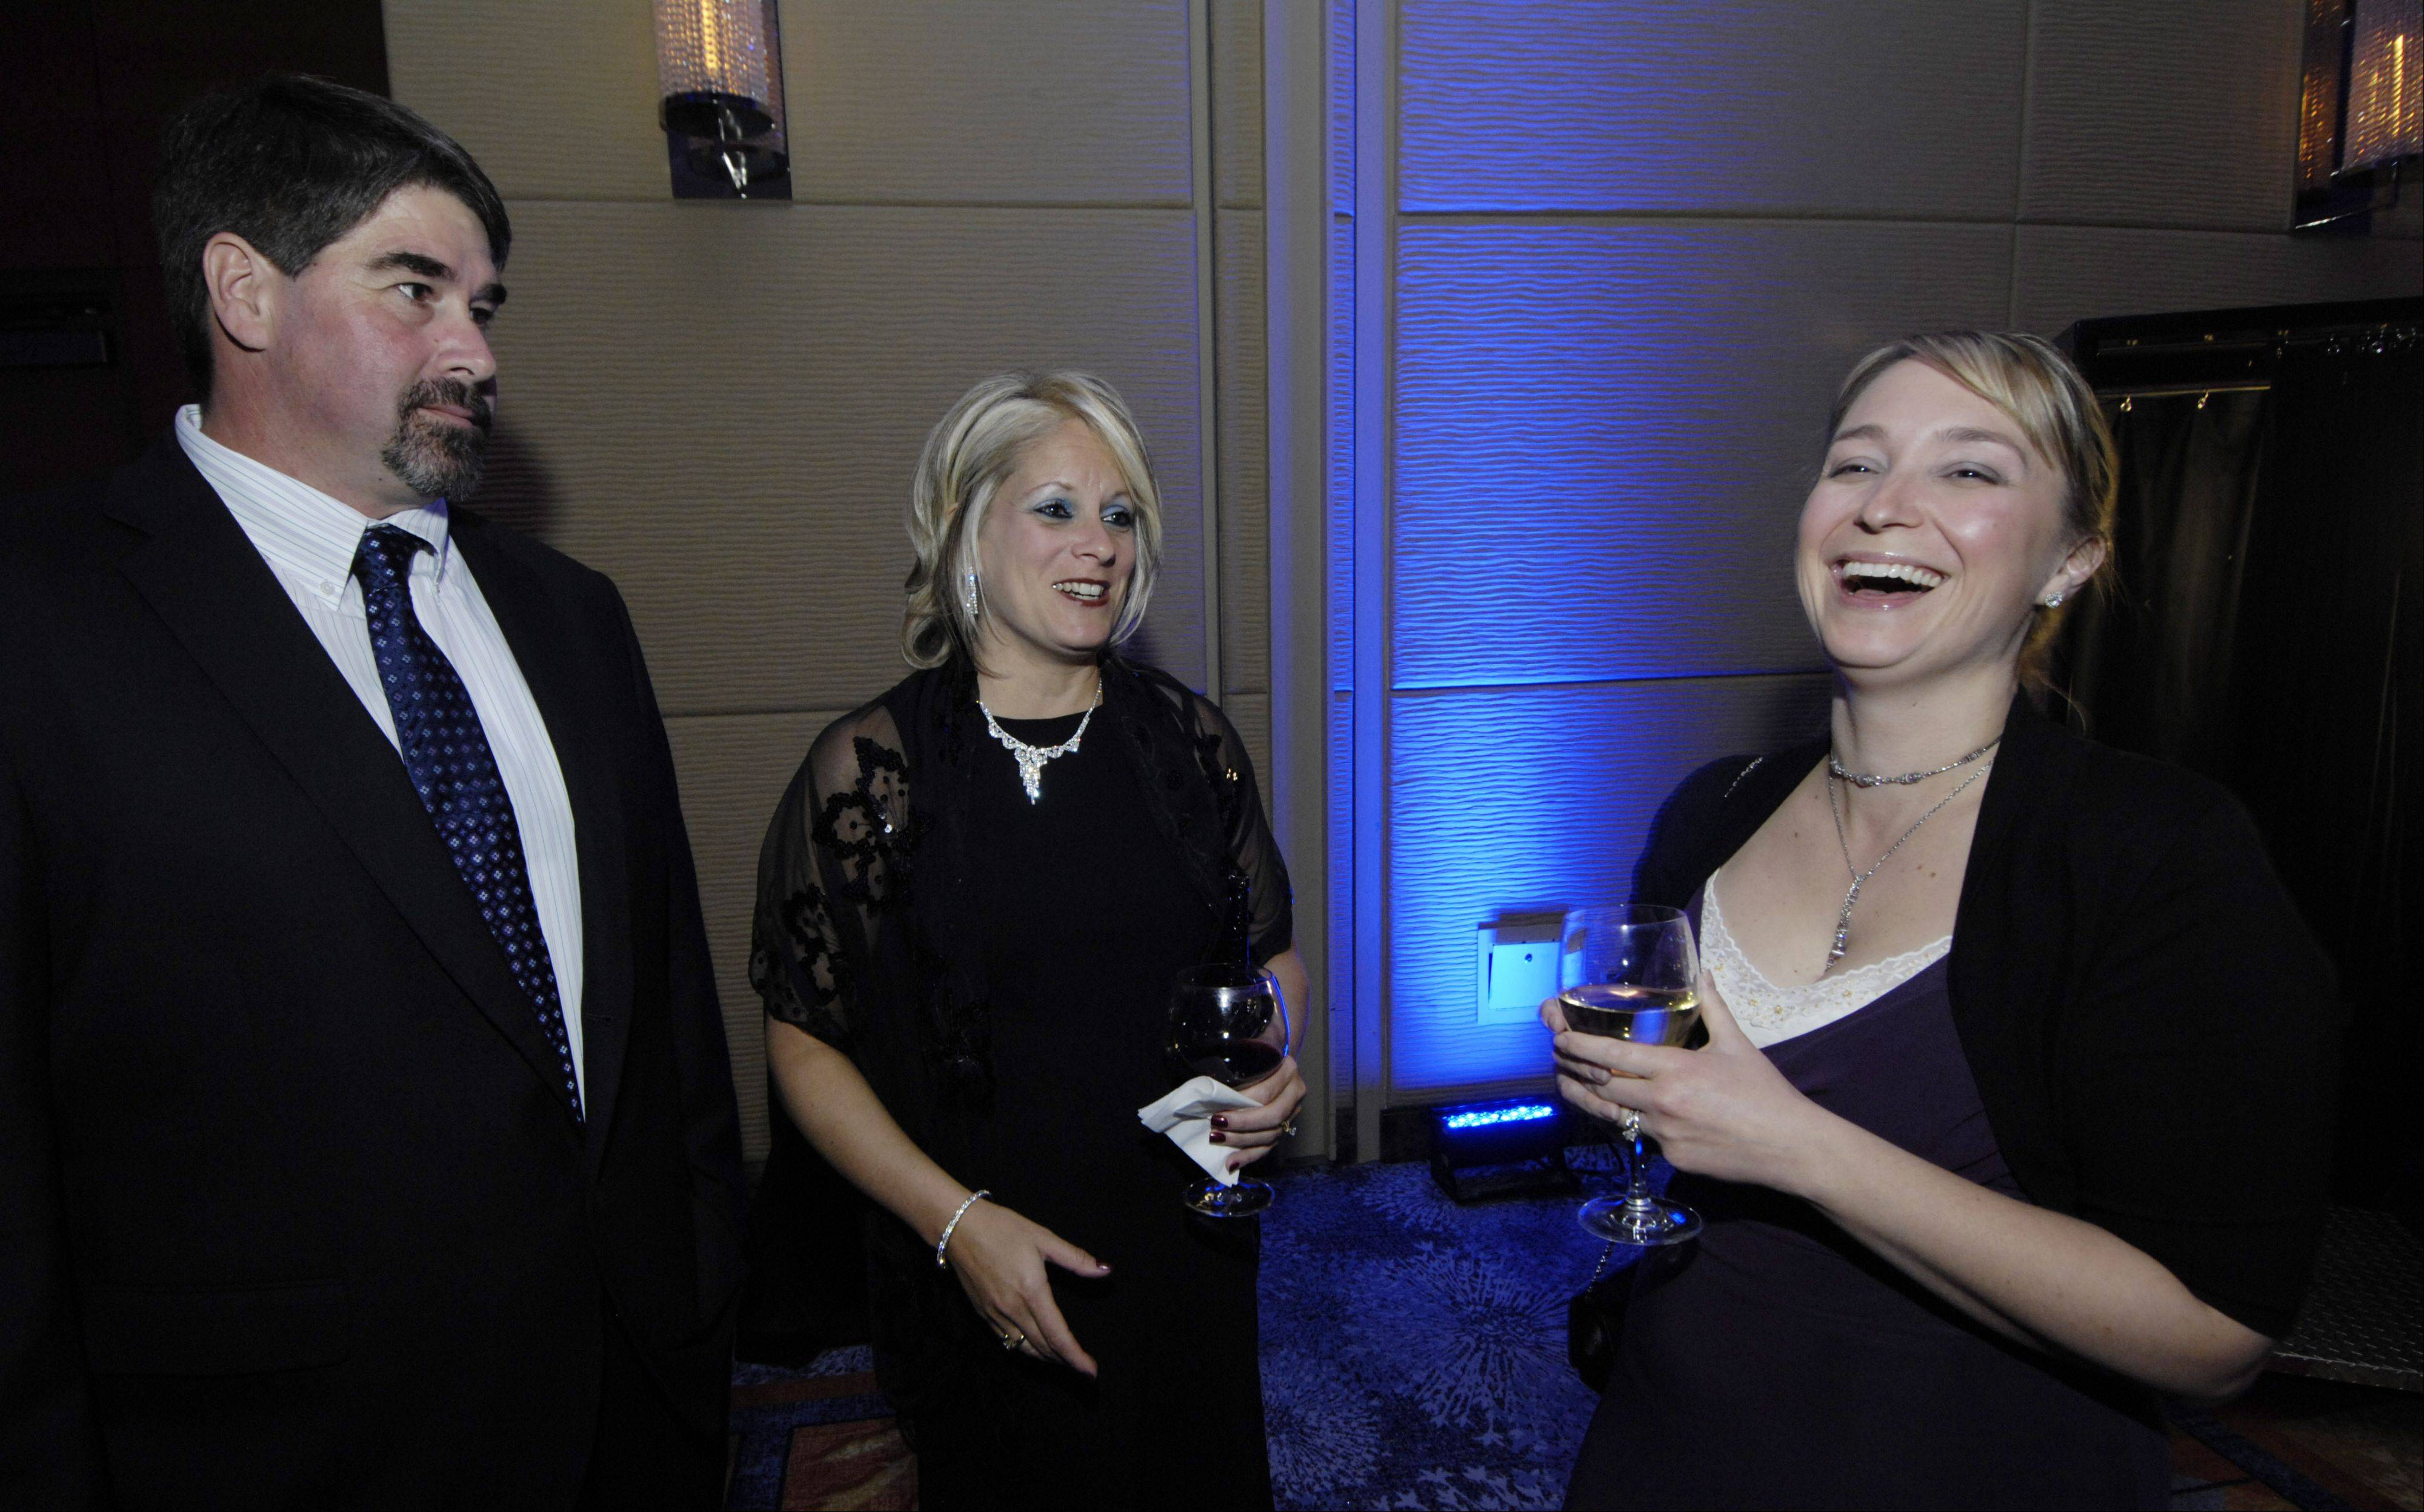 JOE LEWNARD/jlewnard@dailyherald.comLeft to right, Greg and Chris Vanhauter of Elk Grove Village and Lisa Augustine chat during the Schaumburg Business Association gala and awards Saturday at the Renaissance Convention Center Hotel.